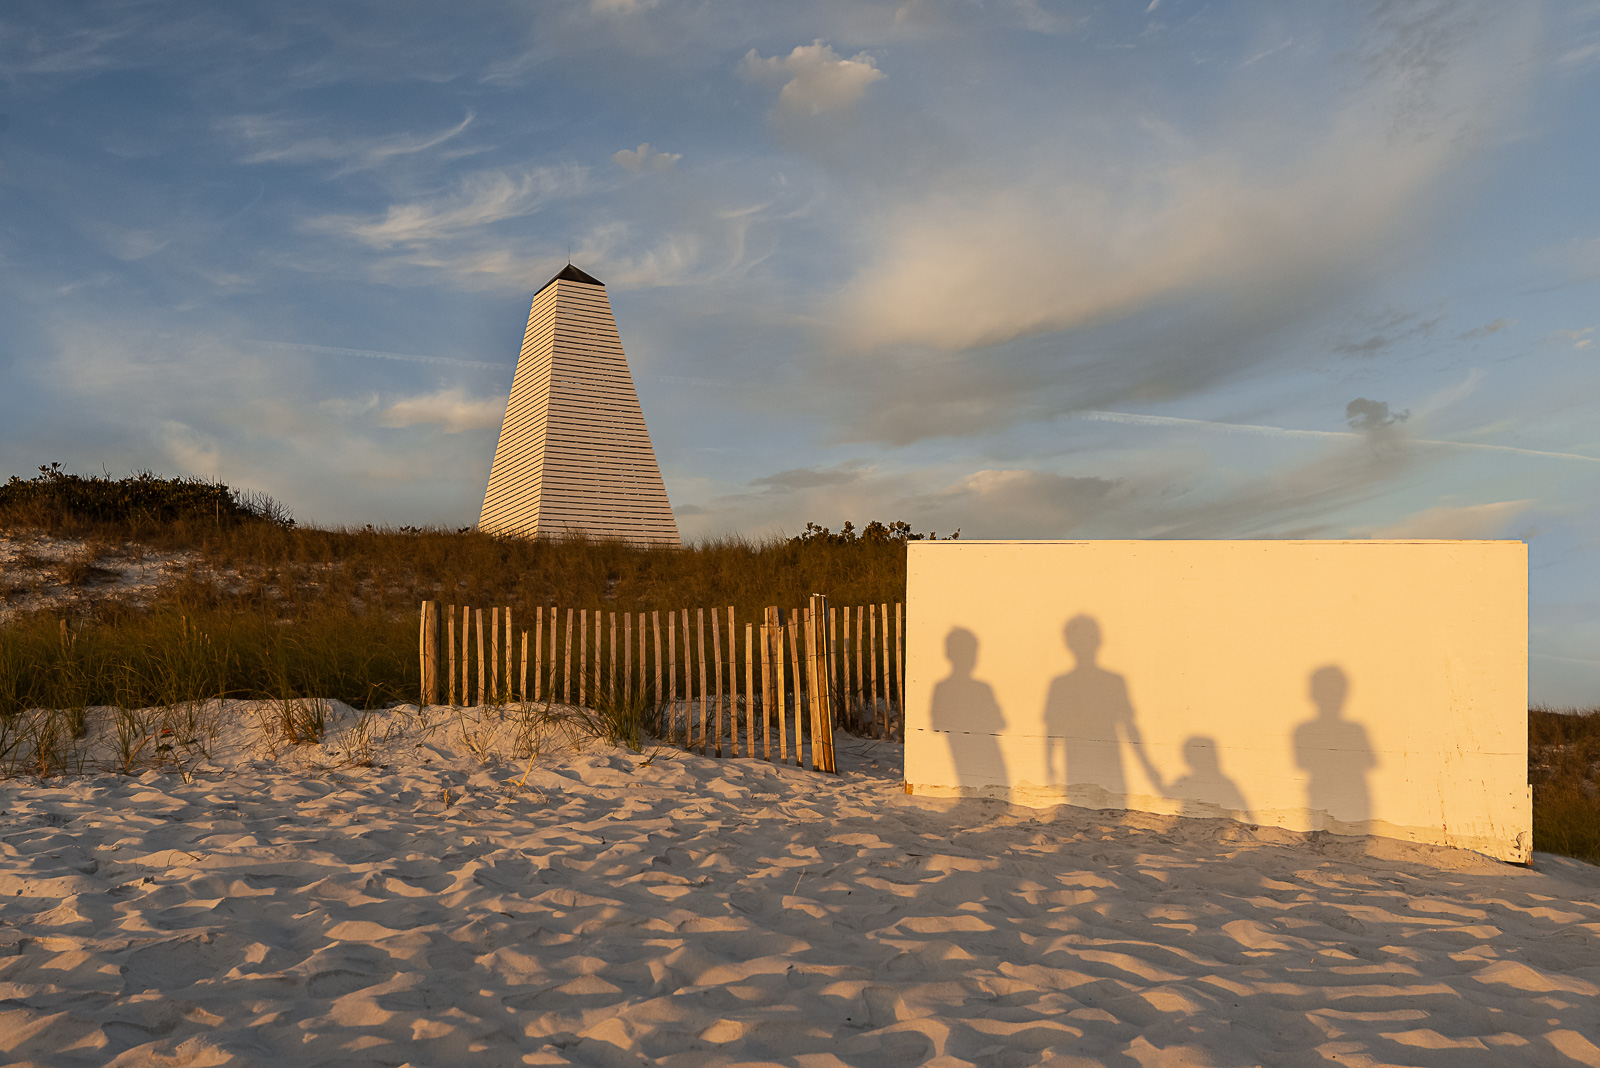 shadows of people on wall in sunset light megan arndt clickin moms member story